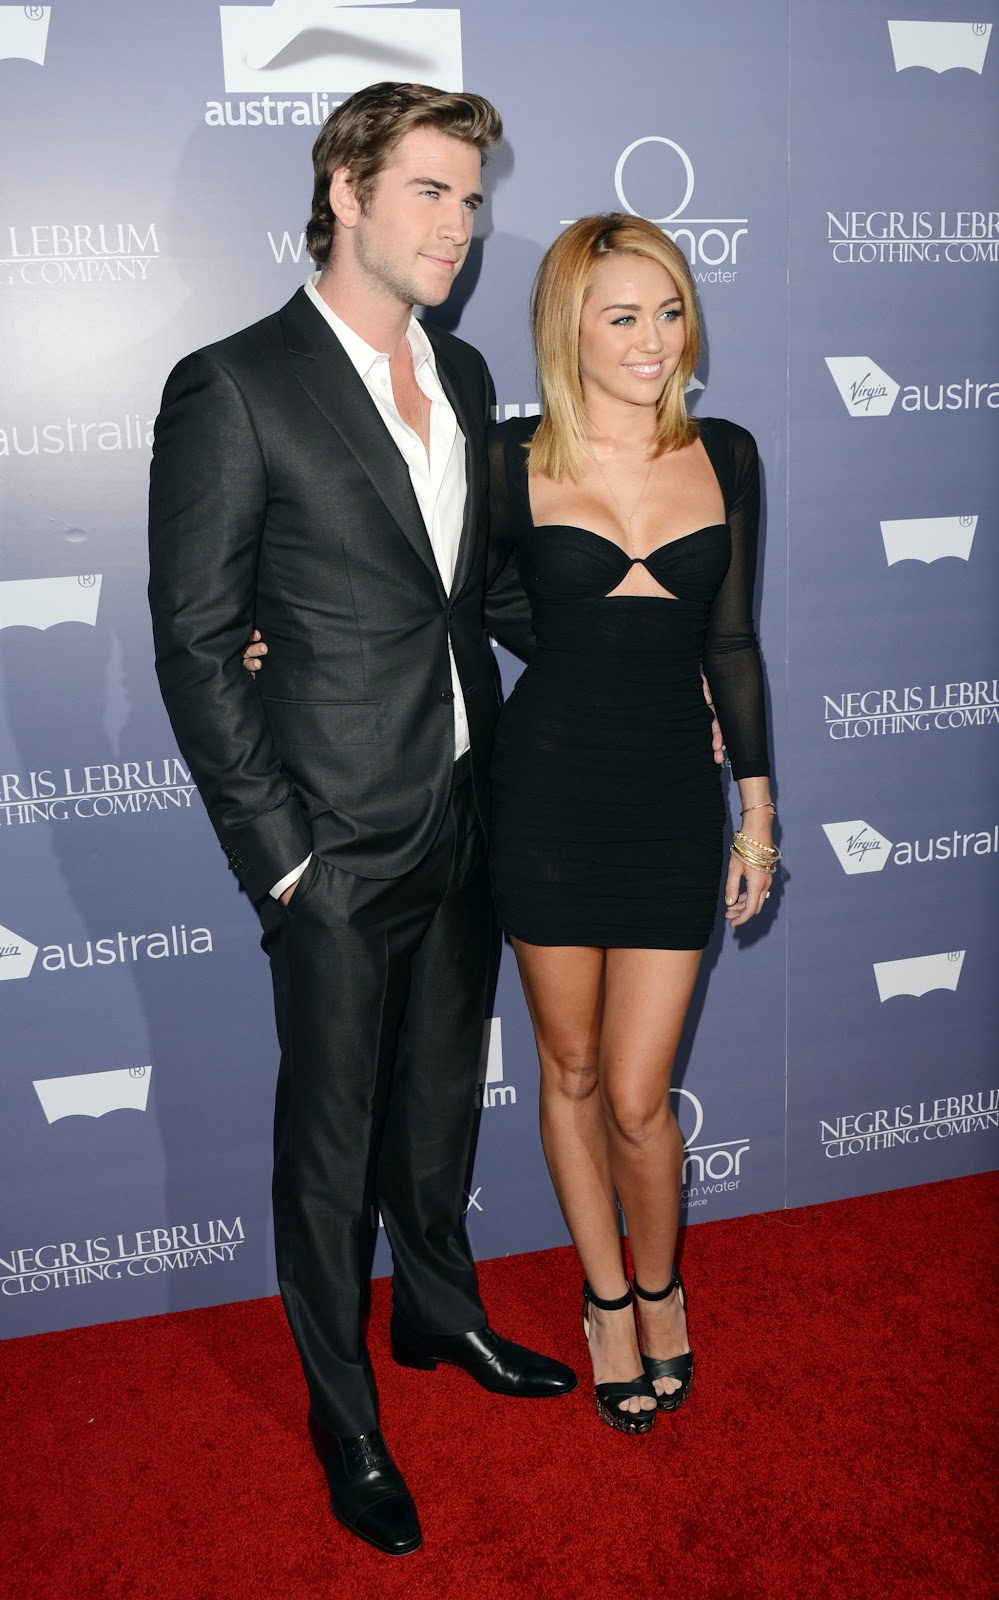 miley cyrus at australians in film awards 2012 just fab